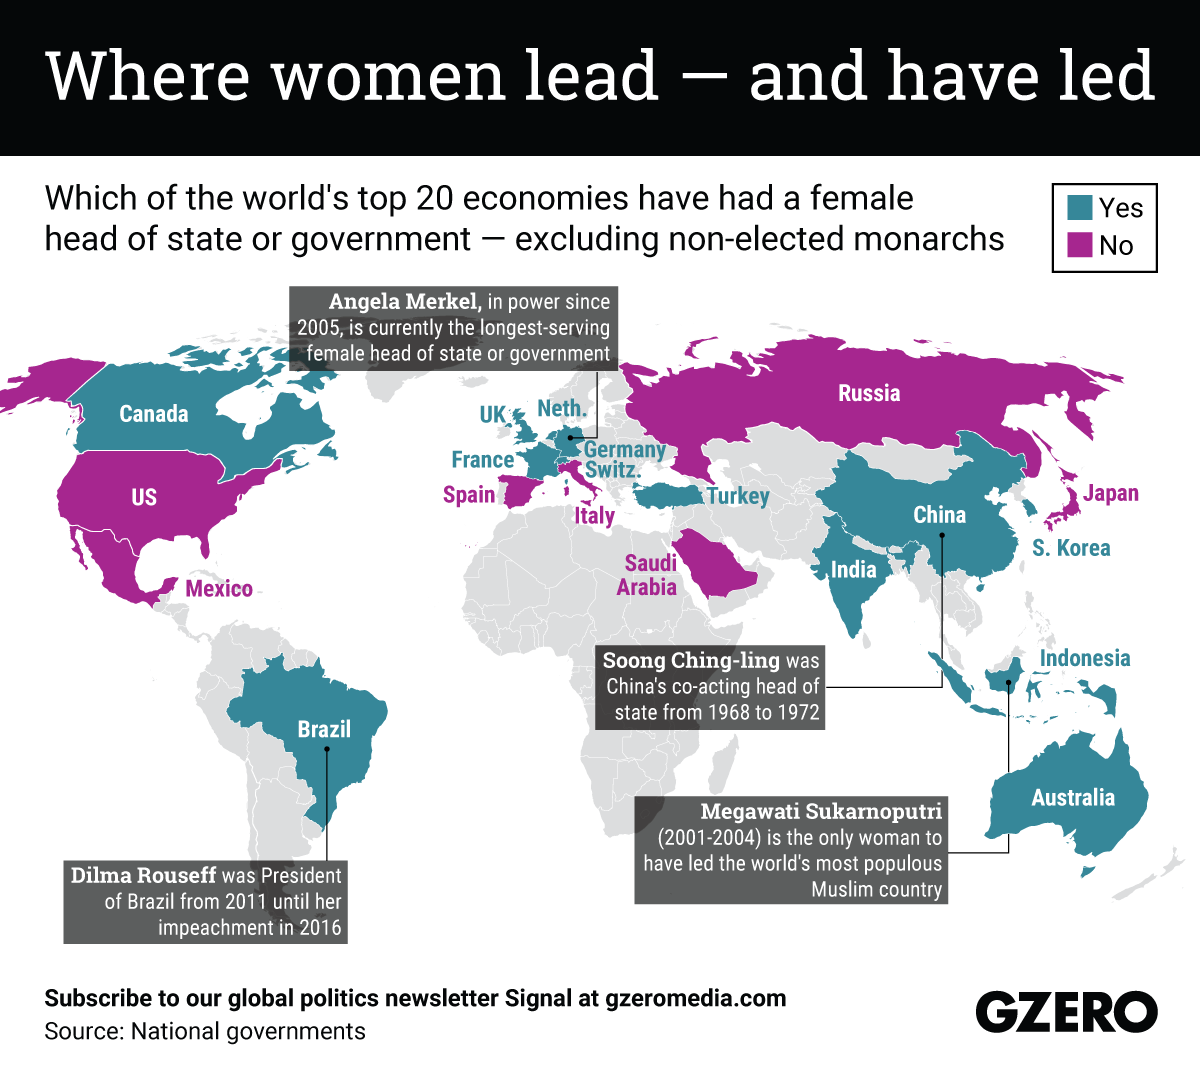 Where women lead — and have led: Which of the world's top 20 economies have had a female head of state or government - excluding non-elected monarchs. (infographic)